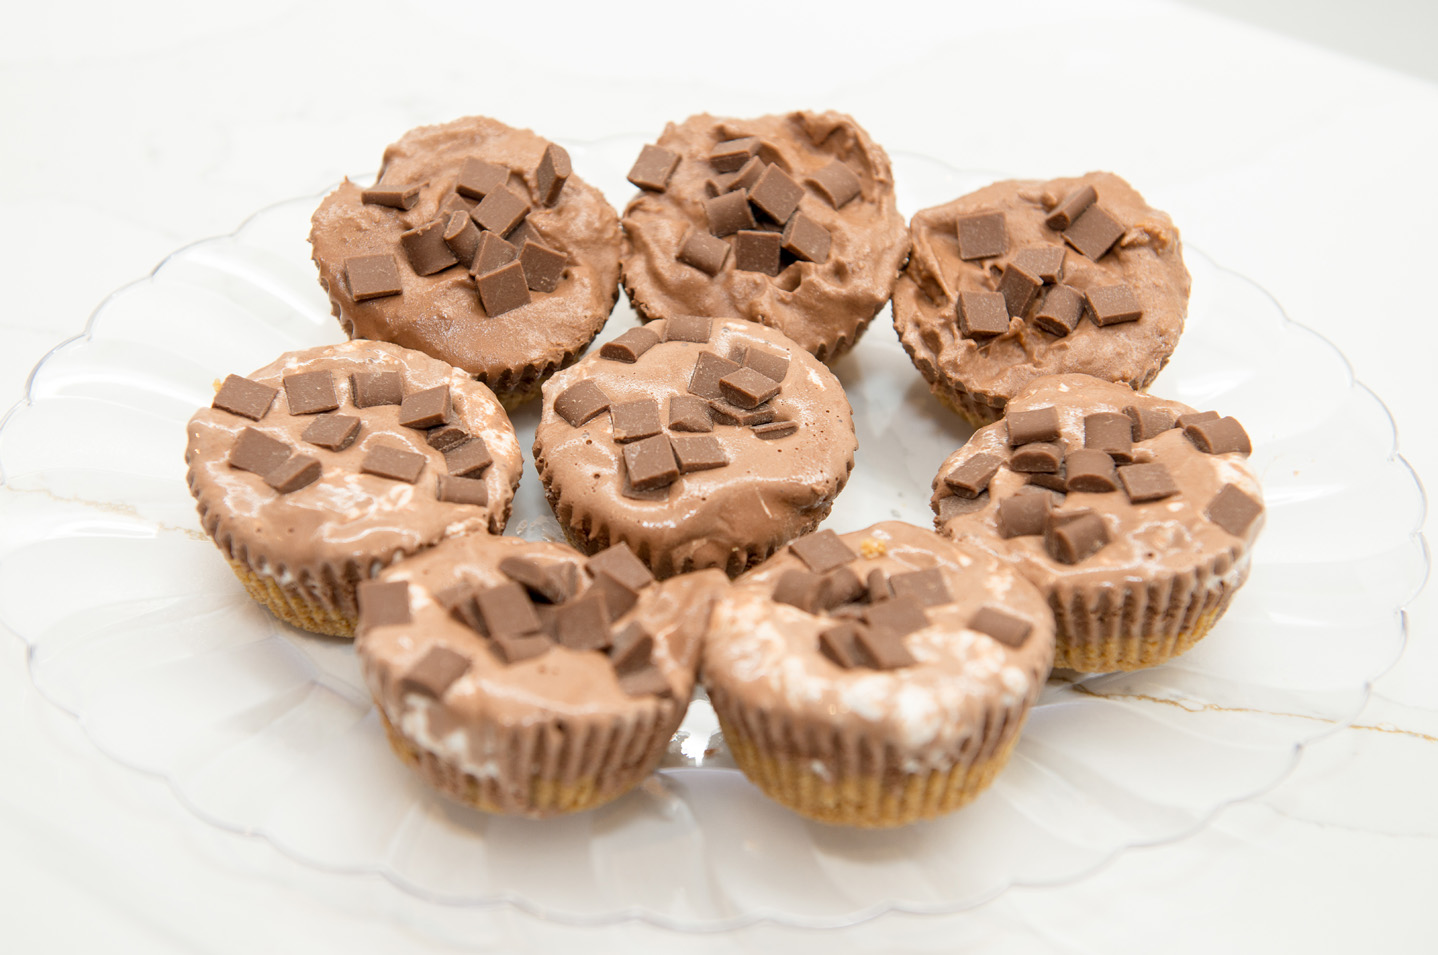 FROZEN CHOCOLATE AND MARSHMALLOW AND PEANUT BUTTER CUPCAKES recipe by home cooking with julie neville12